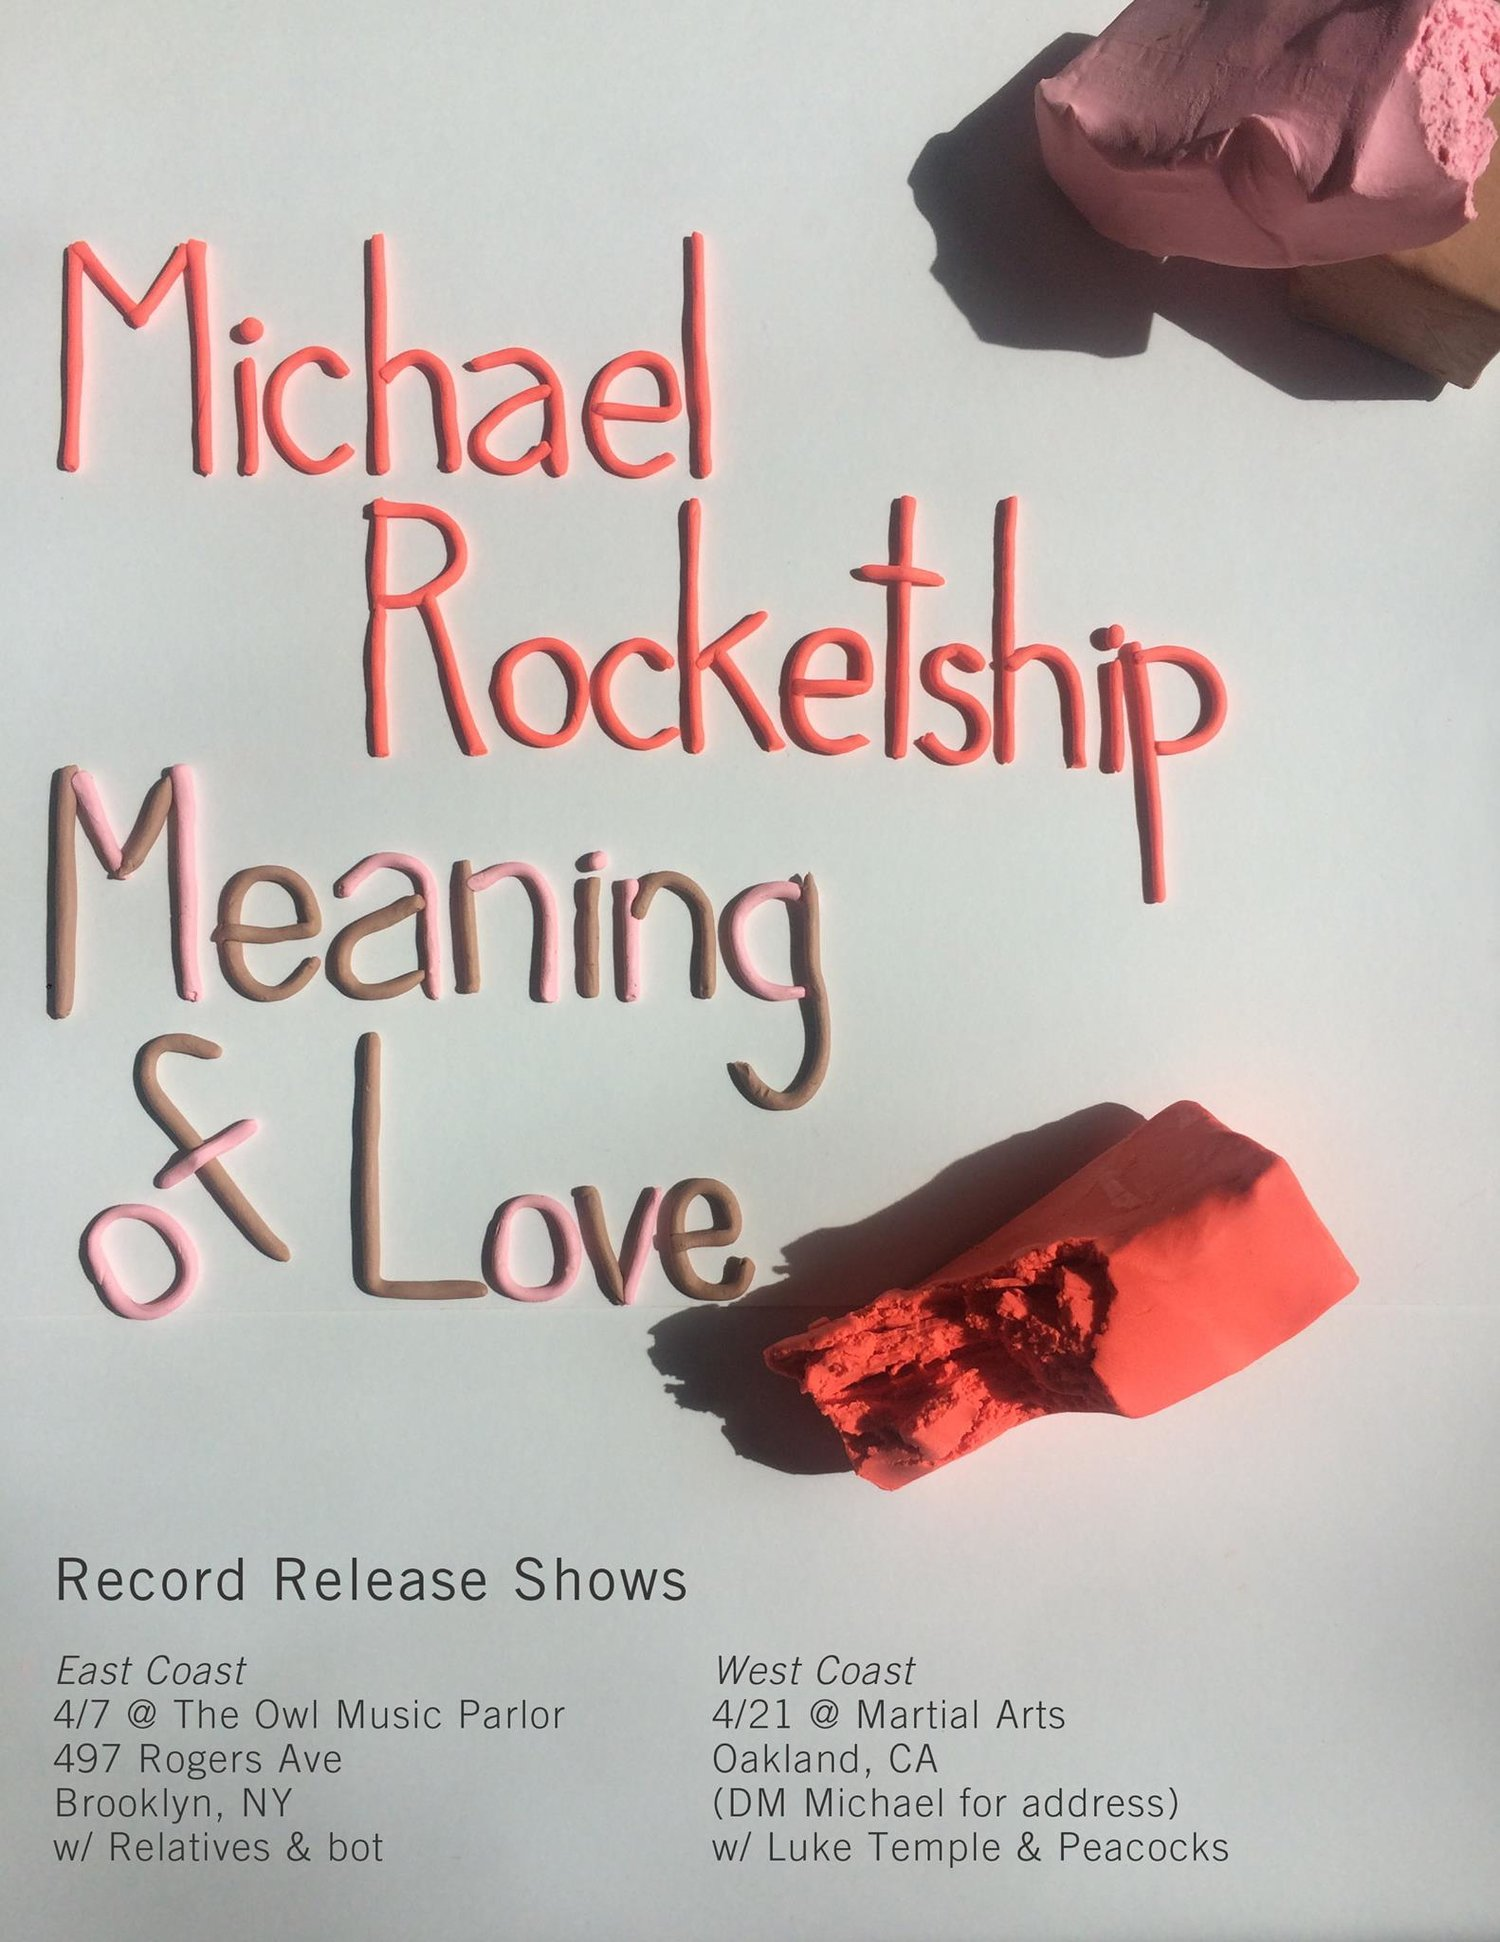 meaning+of+love+shows.jpg